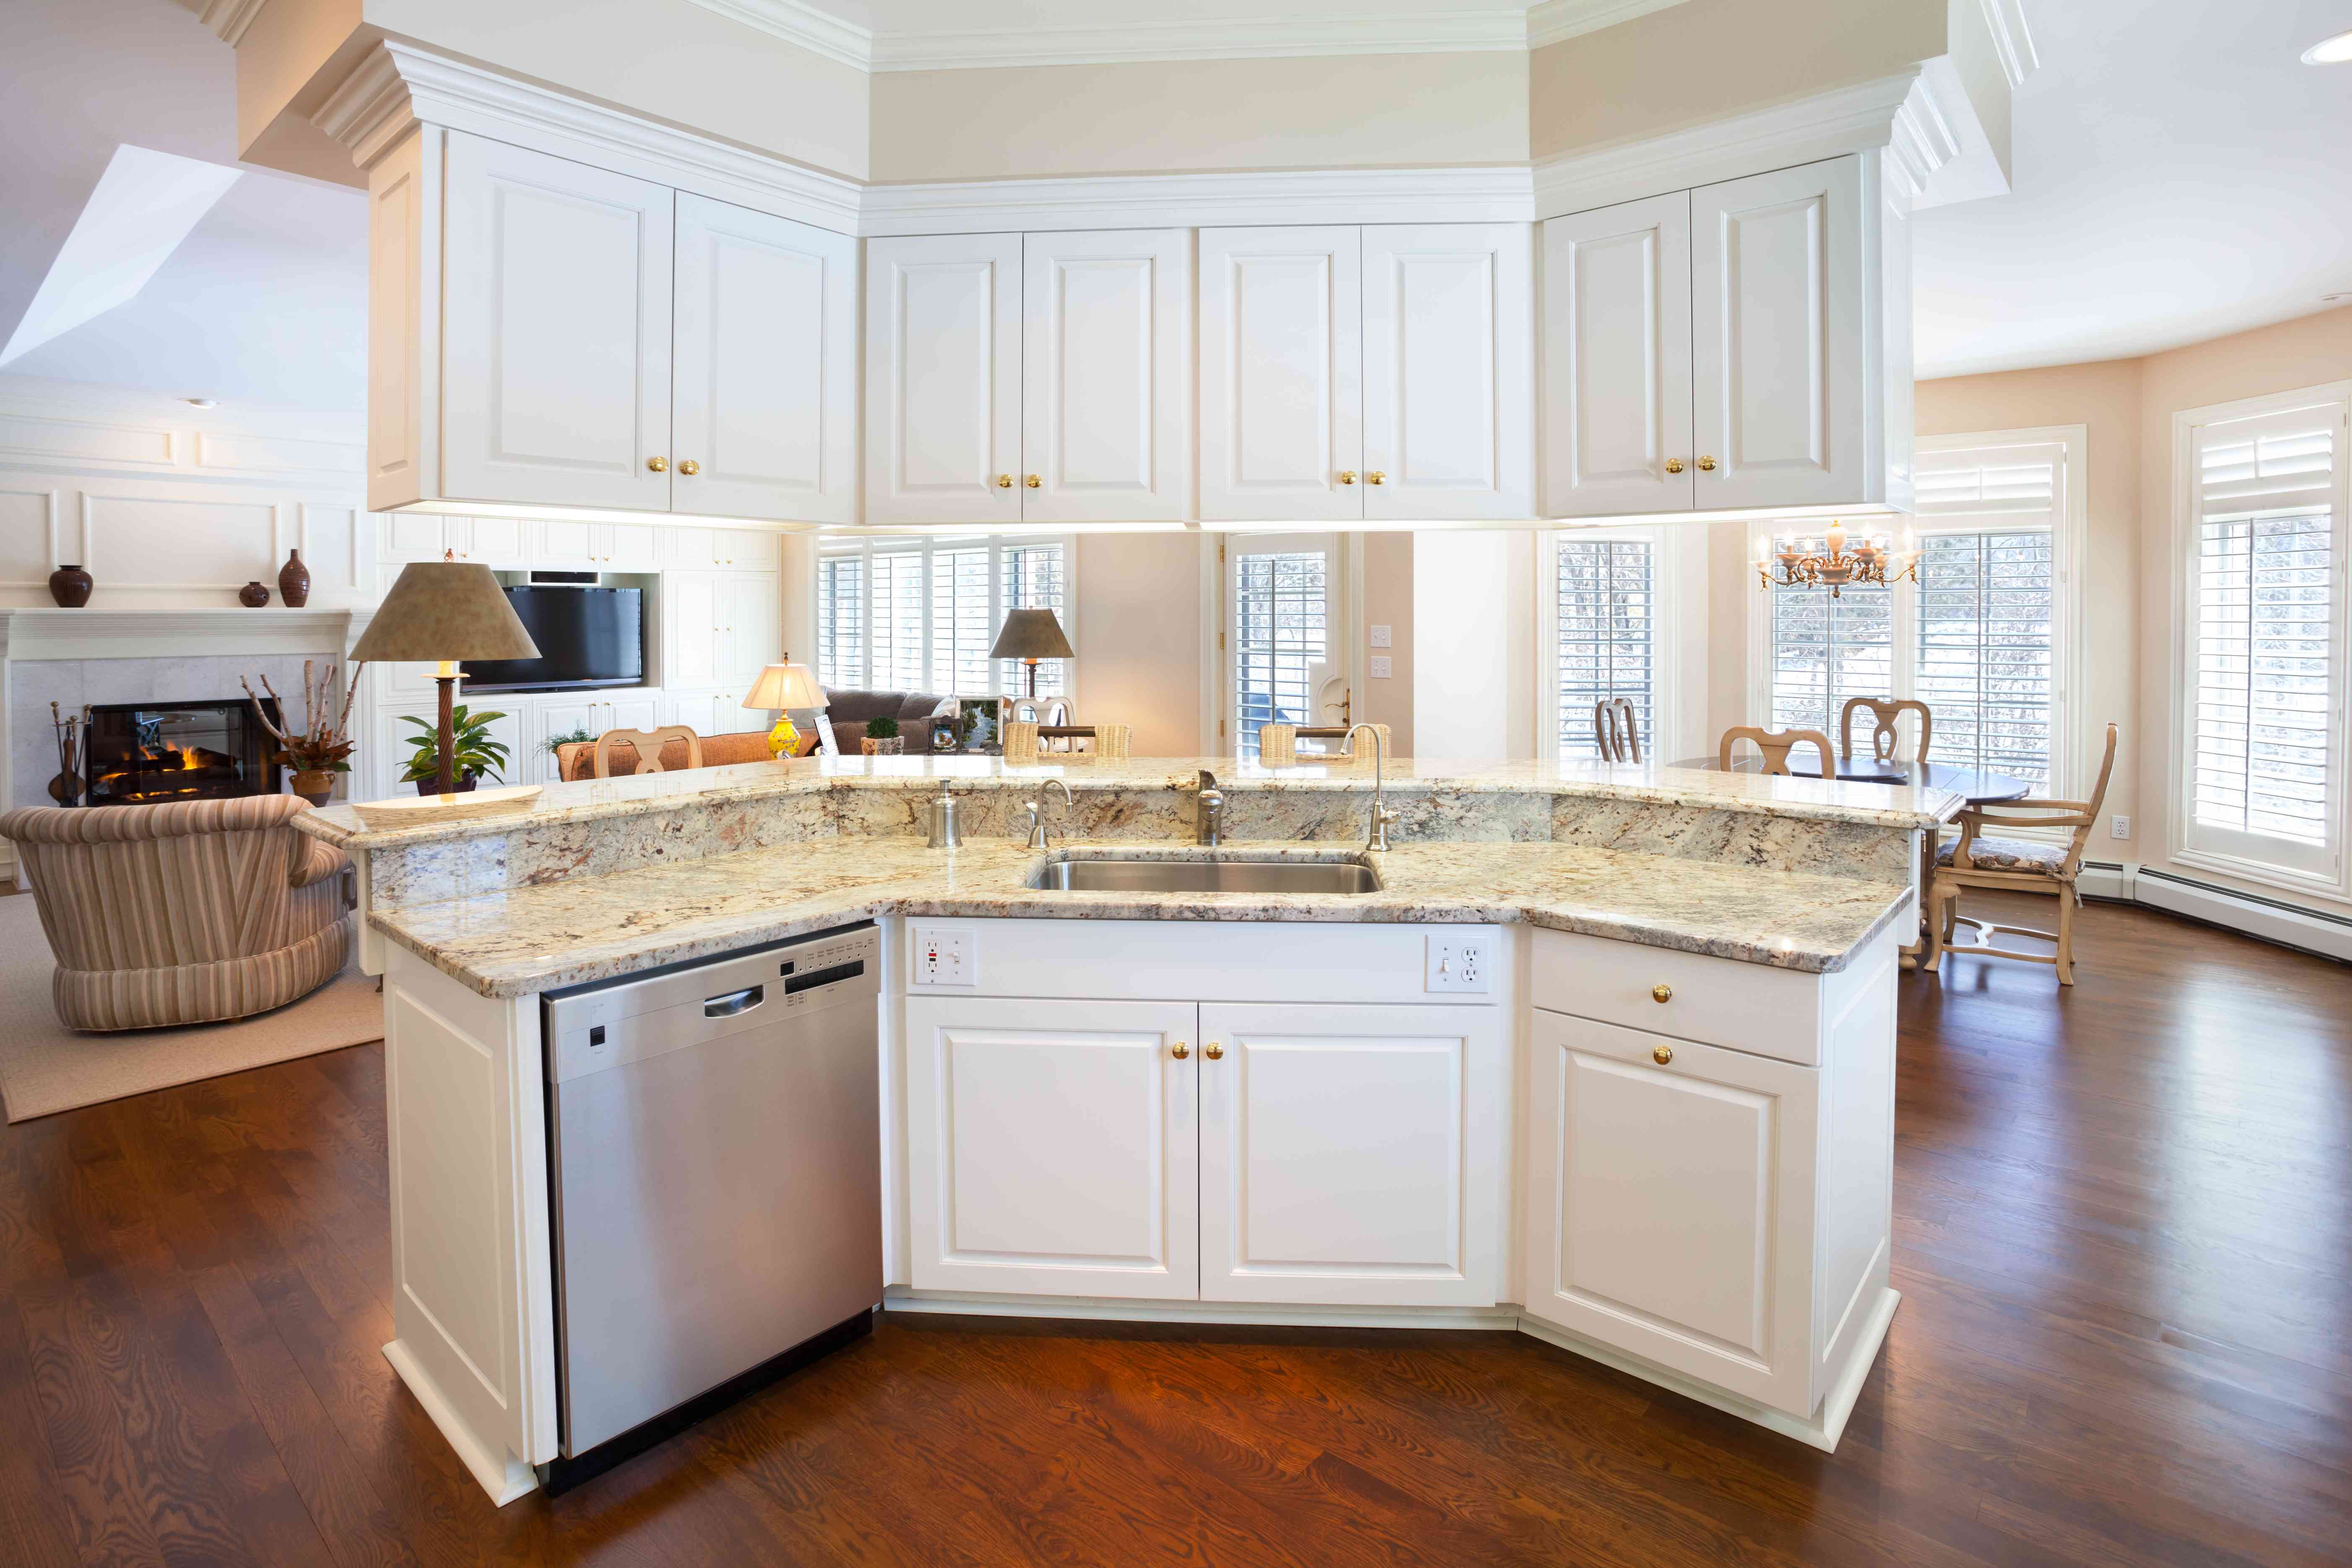 Open Concept Kitchen Island With Marble Counter